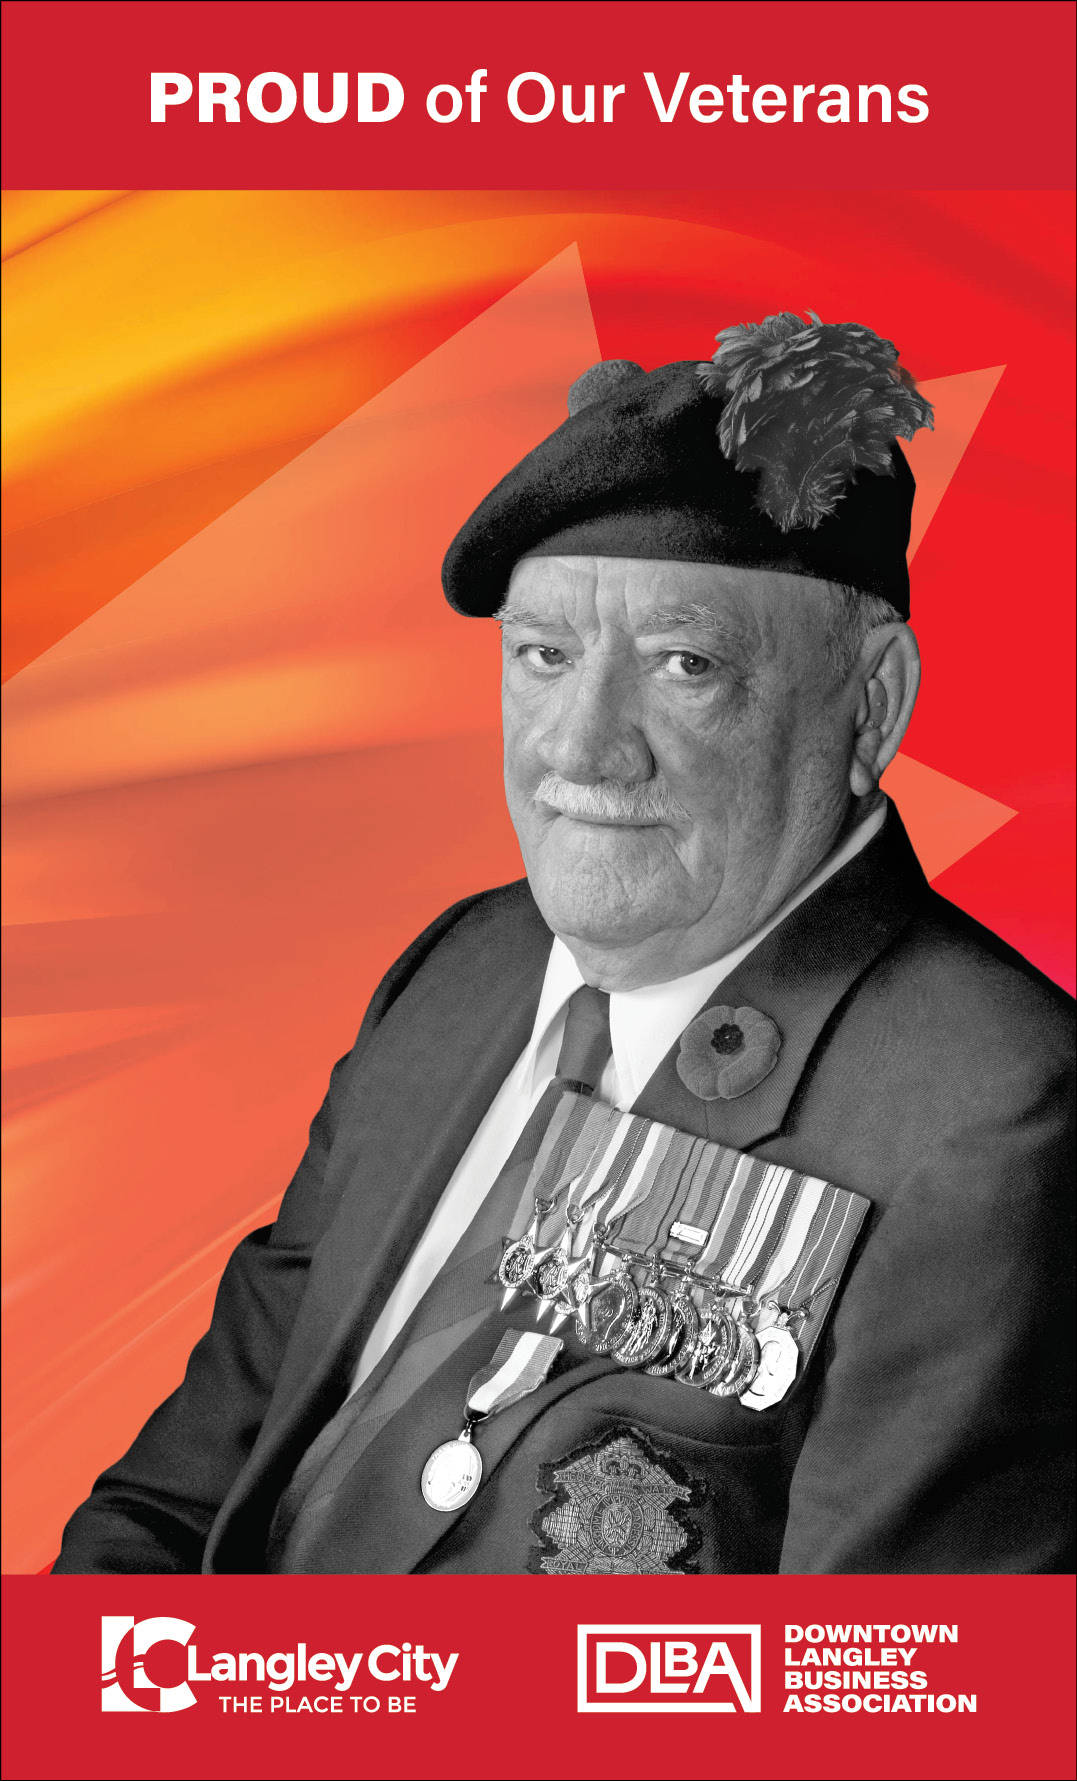 H.D. Freeston, veteran featured on Downtown Langley Business Association Remembrance Day banner. (Downtown Langley Business Association/Special to Langley Advance Times)